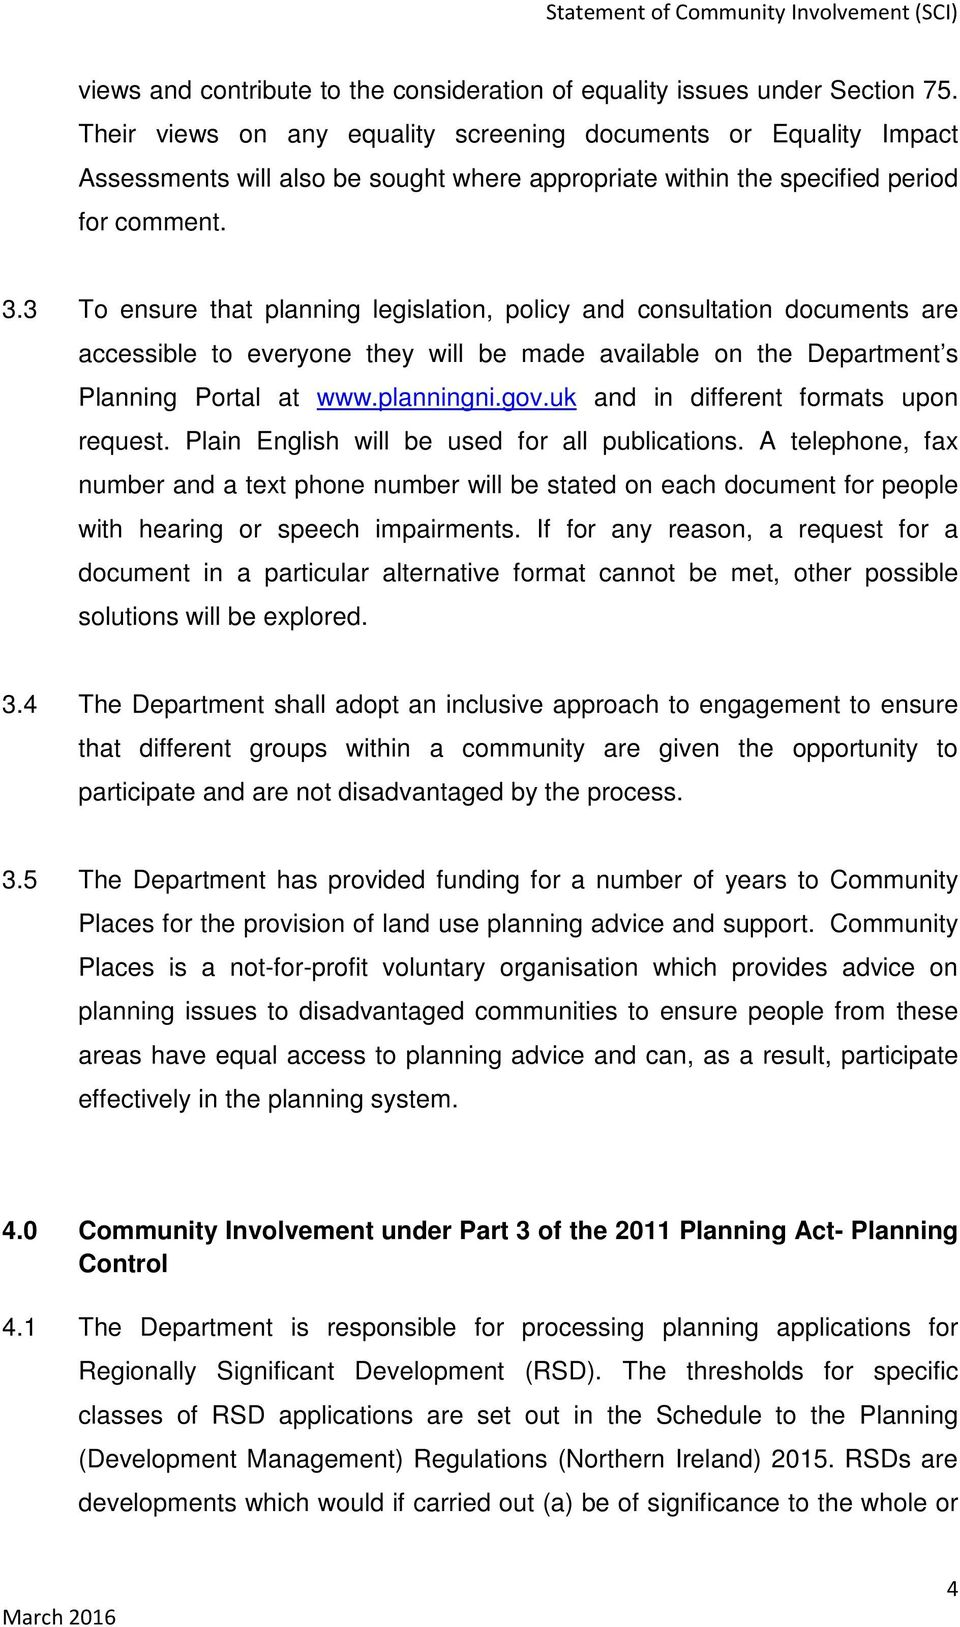 3 To ensure that planning legislation, policy and consultation documents are accessible to everyone they will be made available on the Department s Planning Portal at www.planningni.gov.